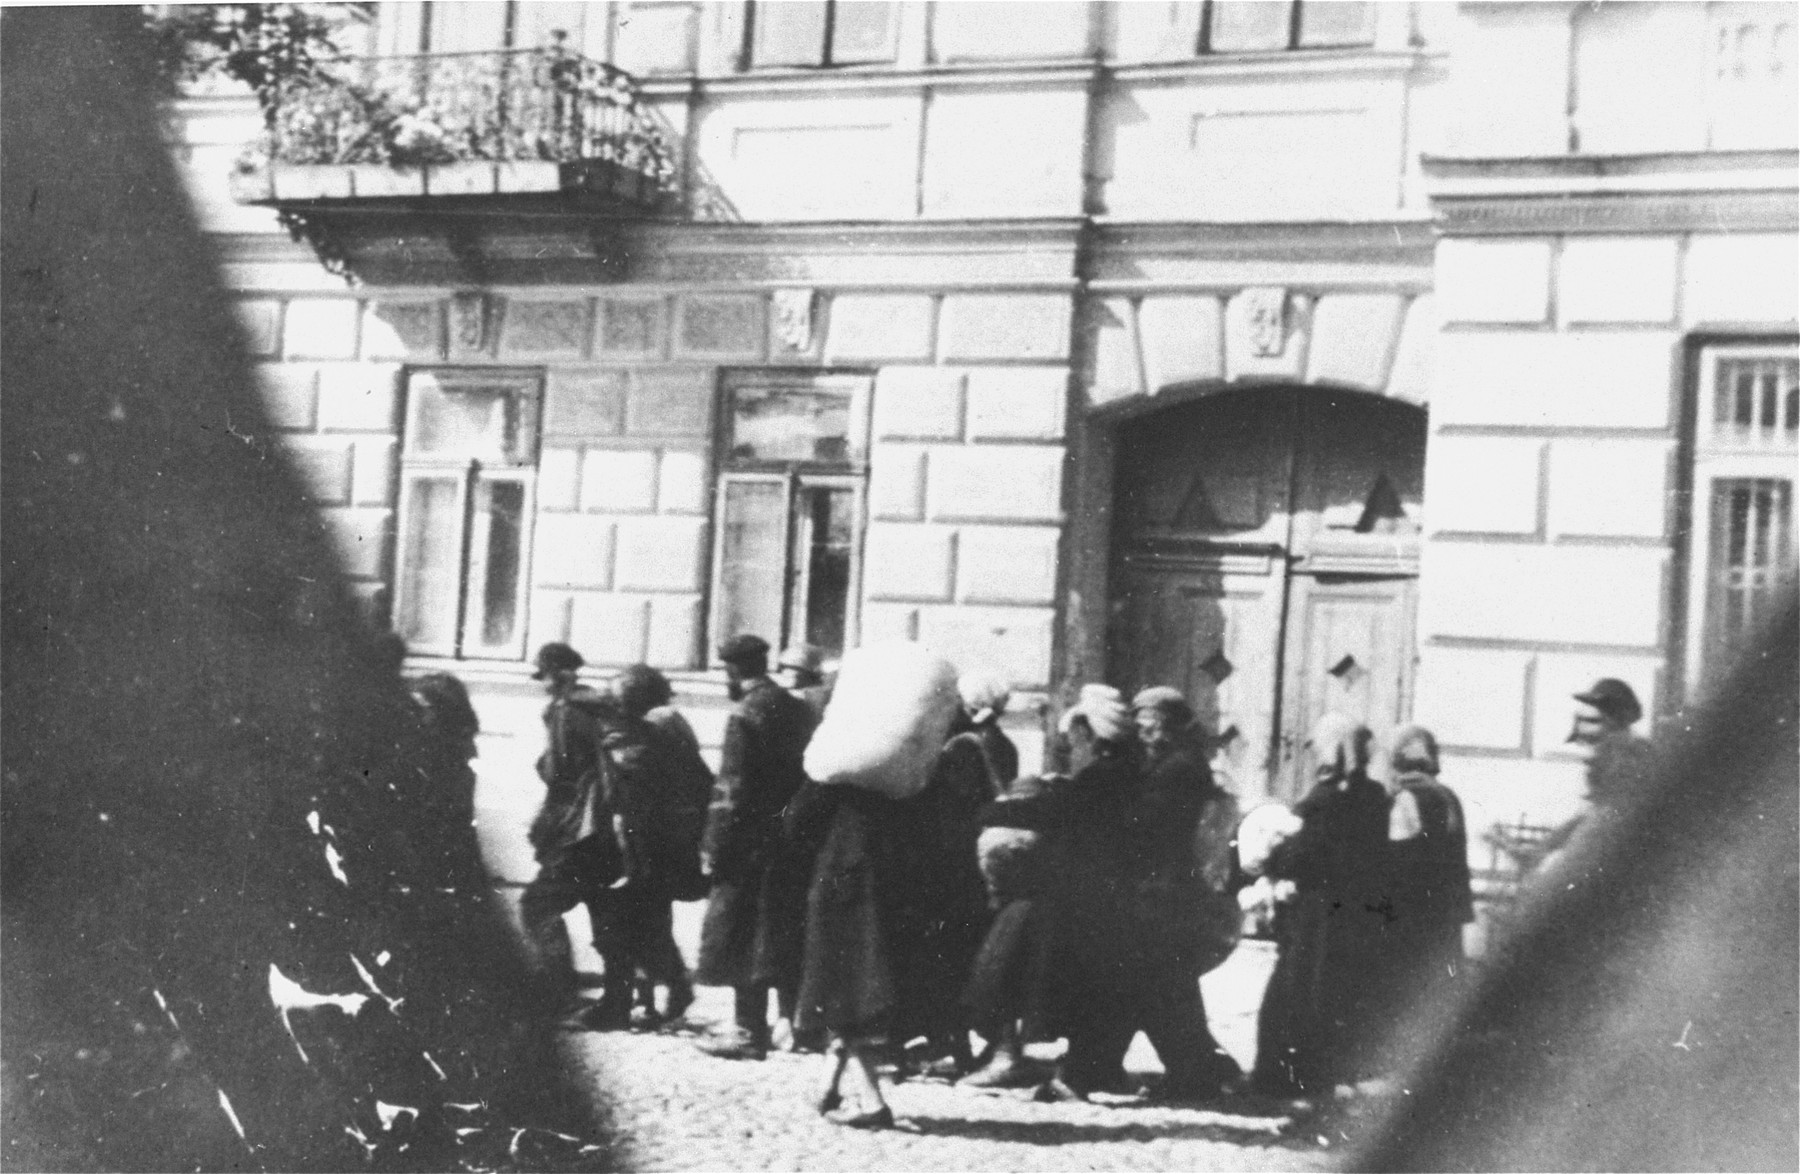 Jews are led through the streets of the town on their way to the railroad station during a deportation action from the Siedlce ghetto.  One of a series of clandestine photographs taken by a member of the AK (Polish Home Army) underground.